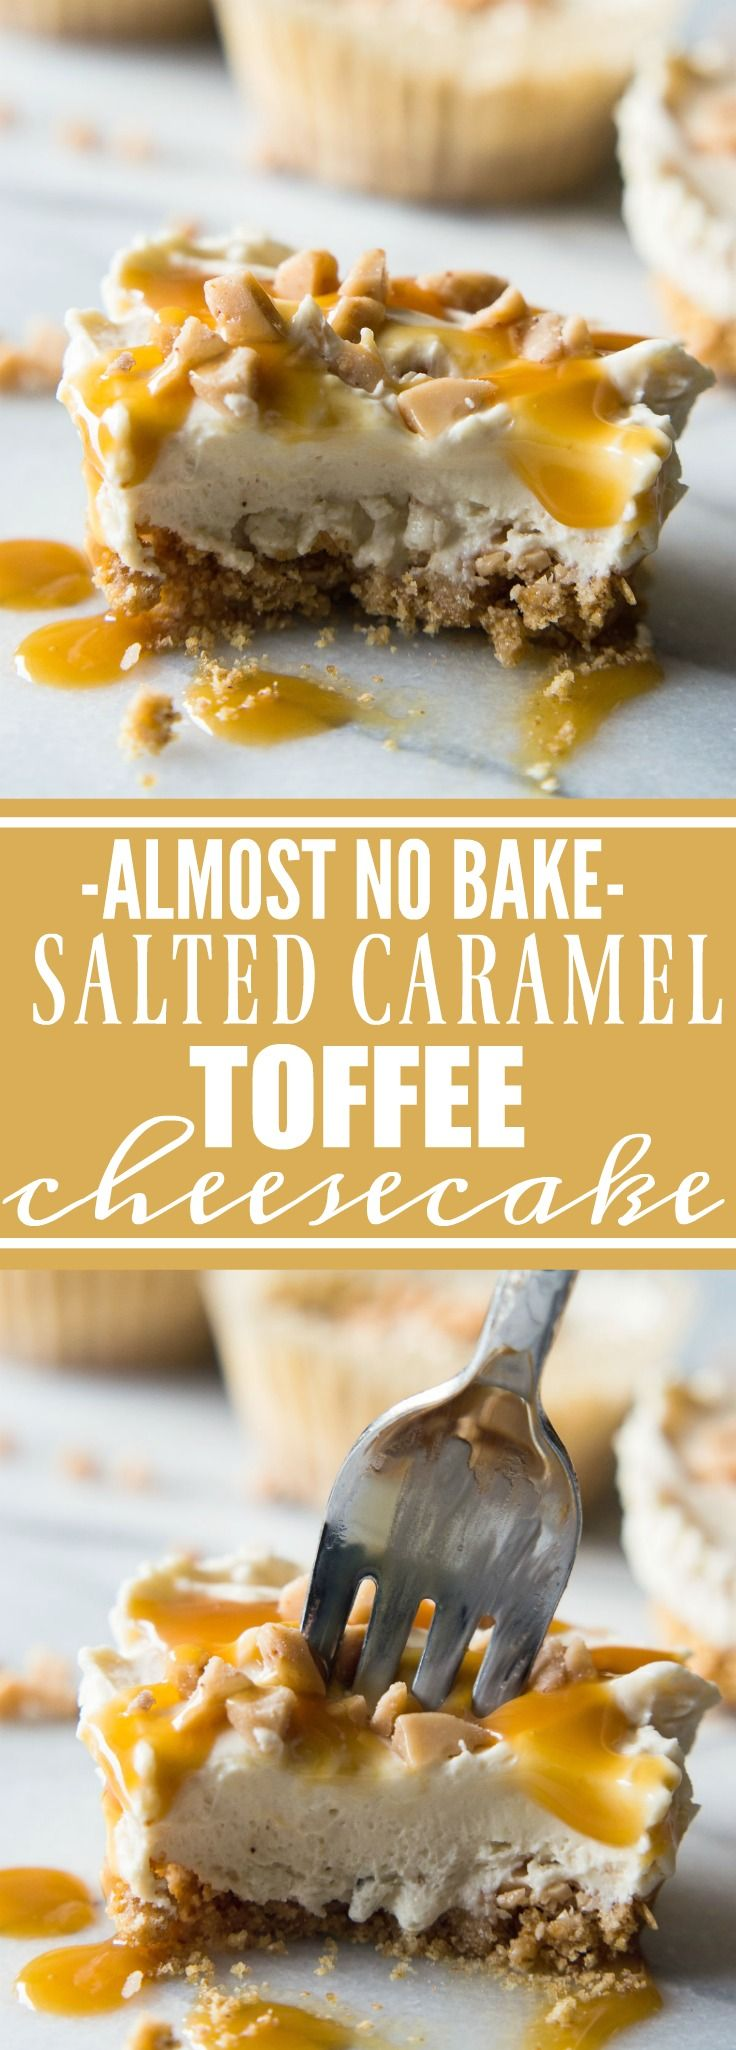 Almost NO BAKE Salted Caramel Toffee Cheesecakes